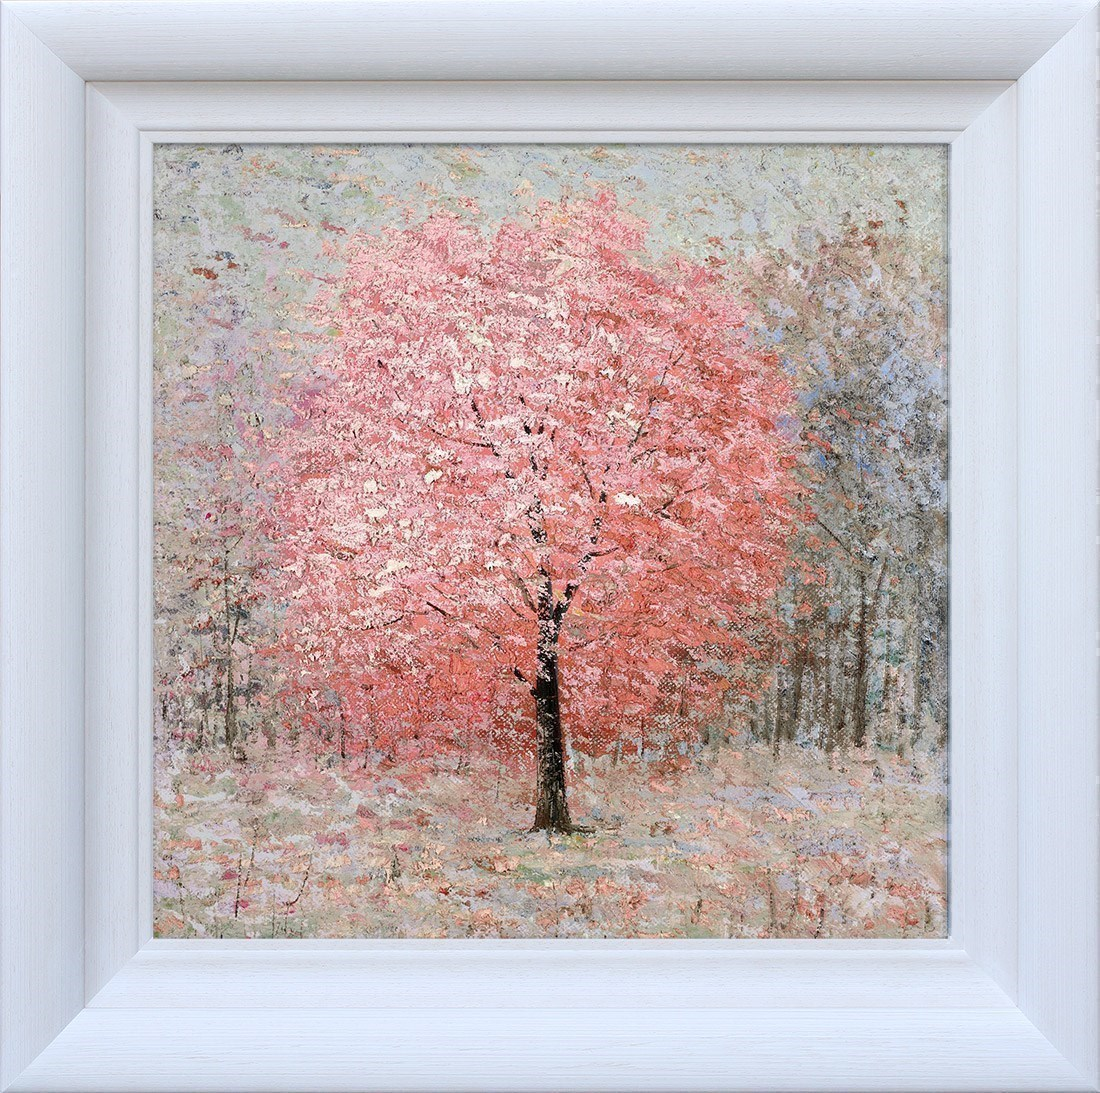 Shimmering Rose by Inam - Hand Finished Limited Edition on Canvas sized 23x23 inches. Available from Whitewall Galleries